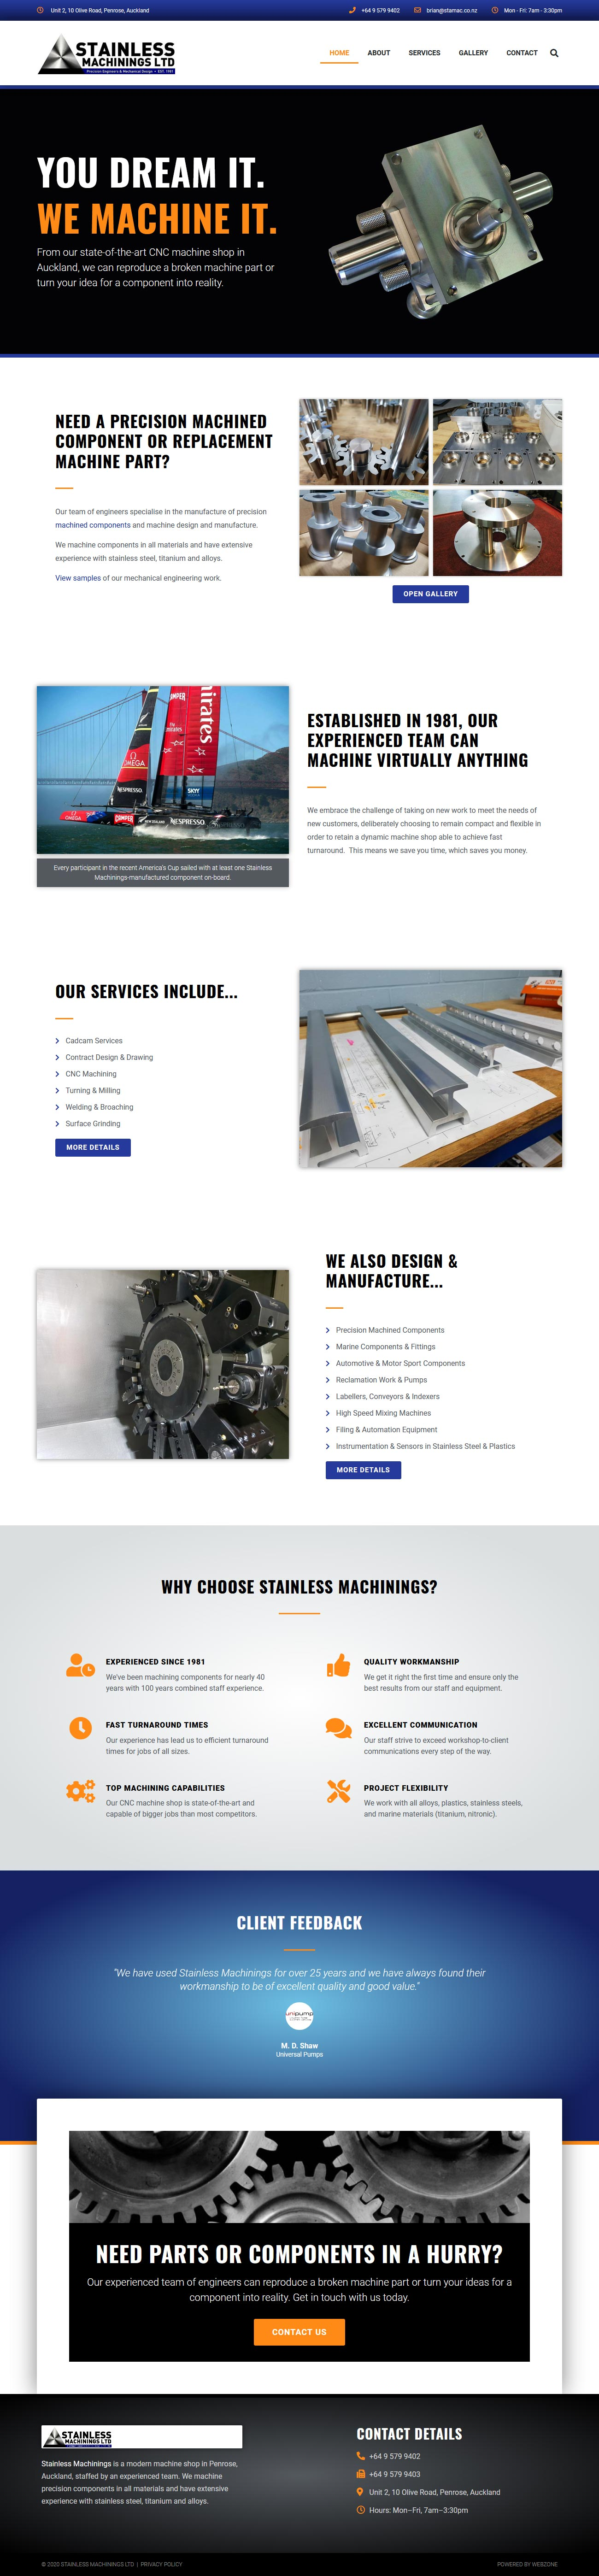 Website design for Stainless Machinings